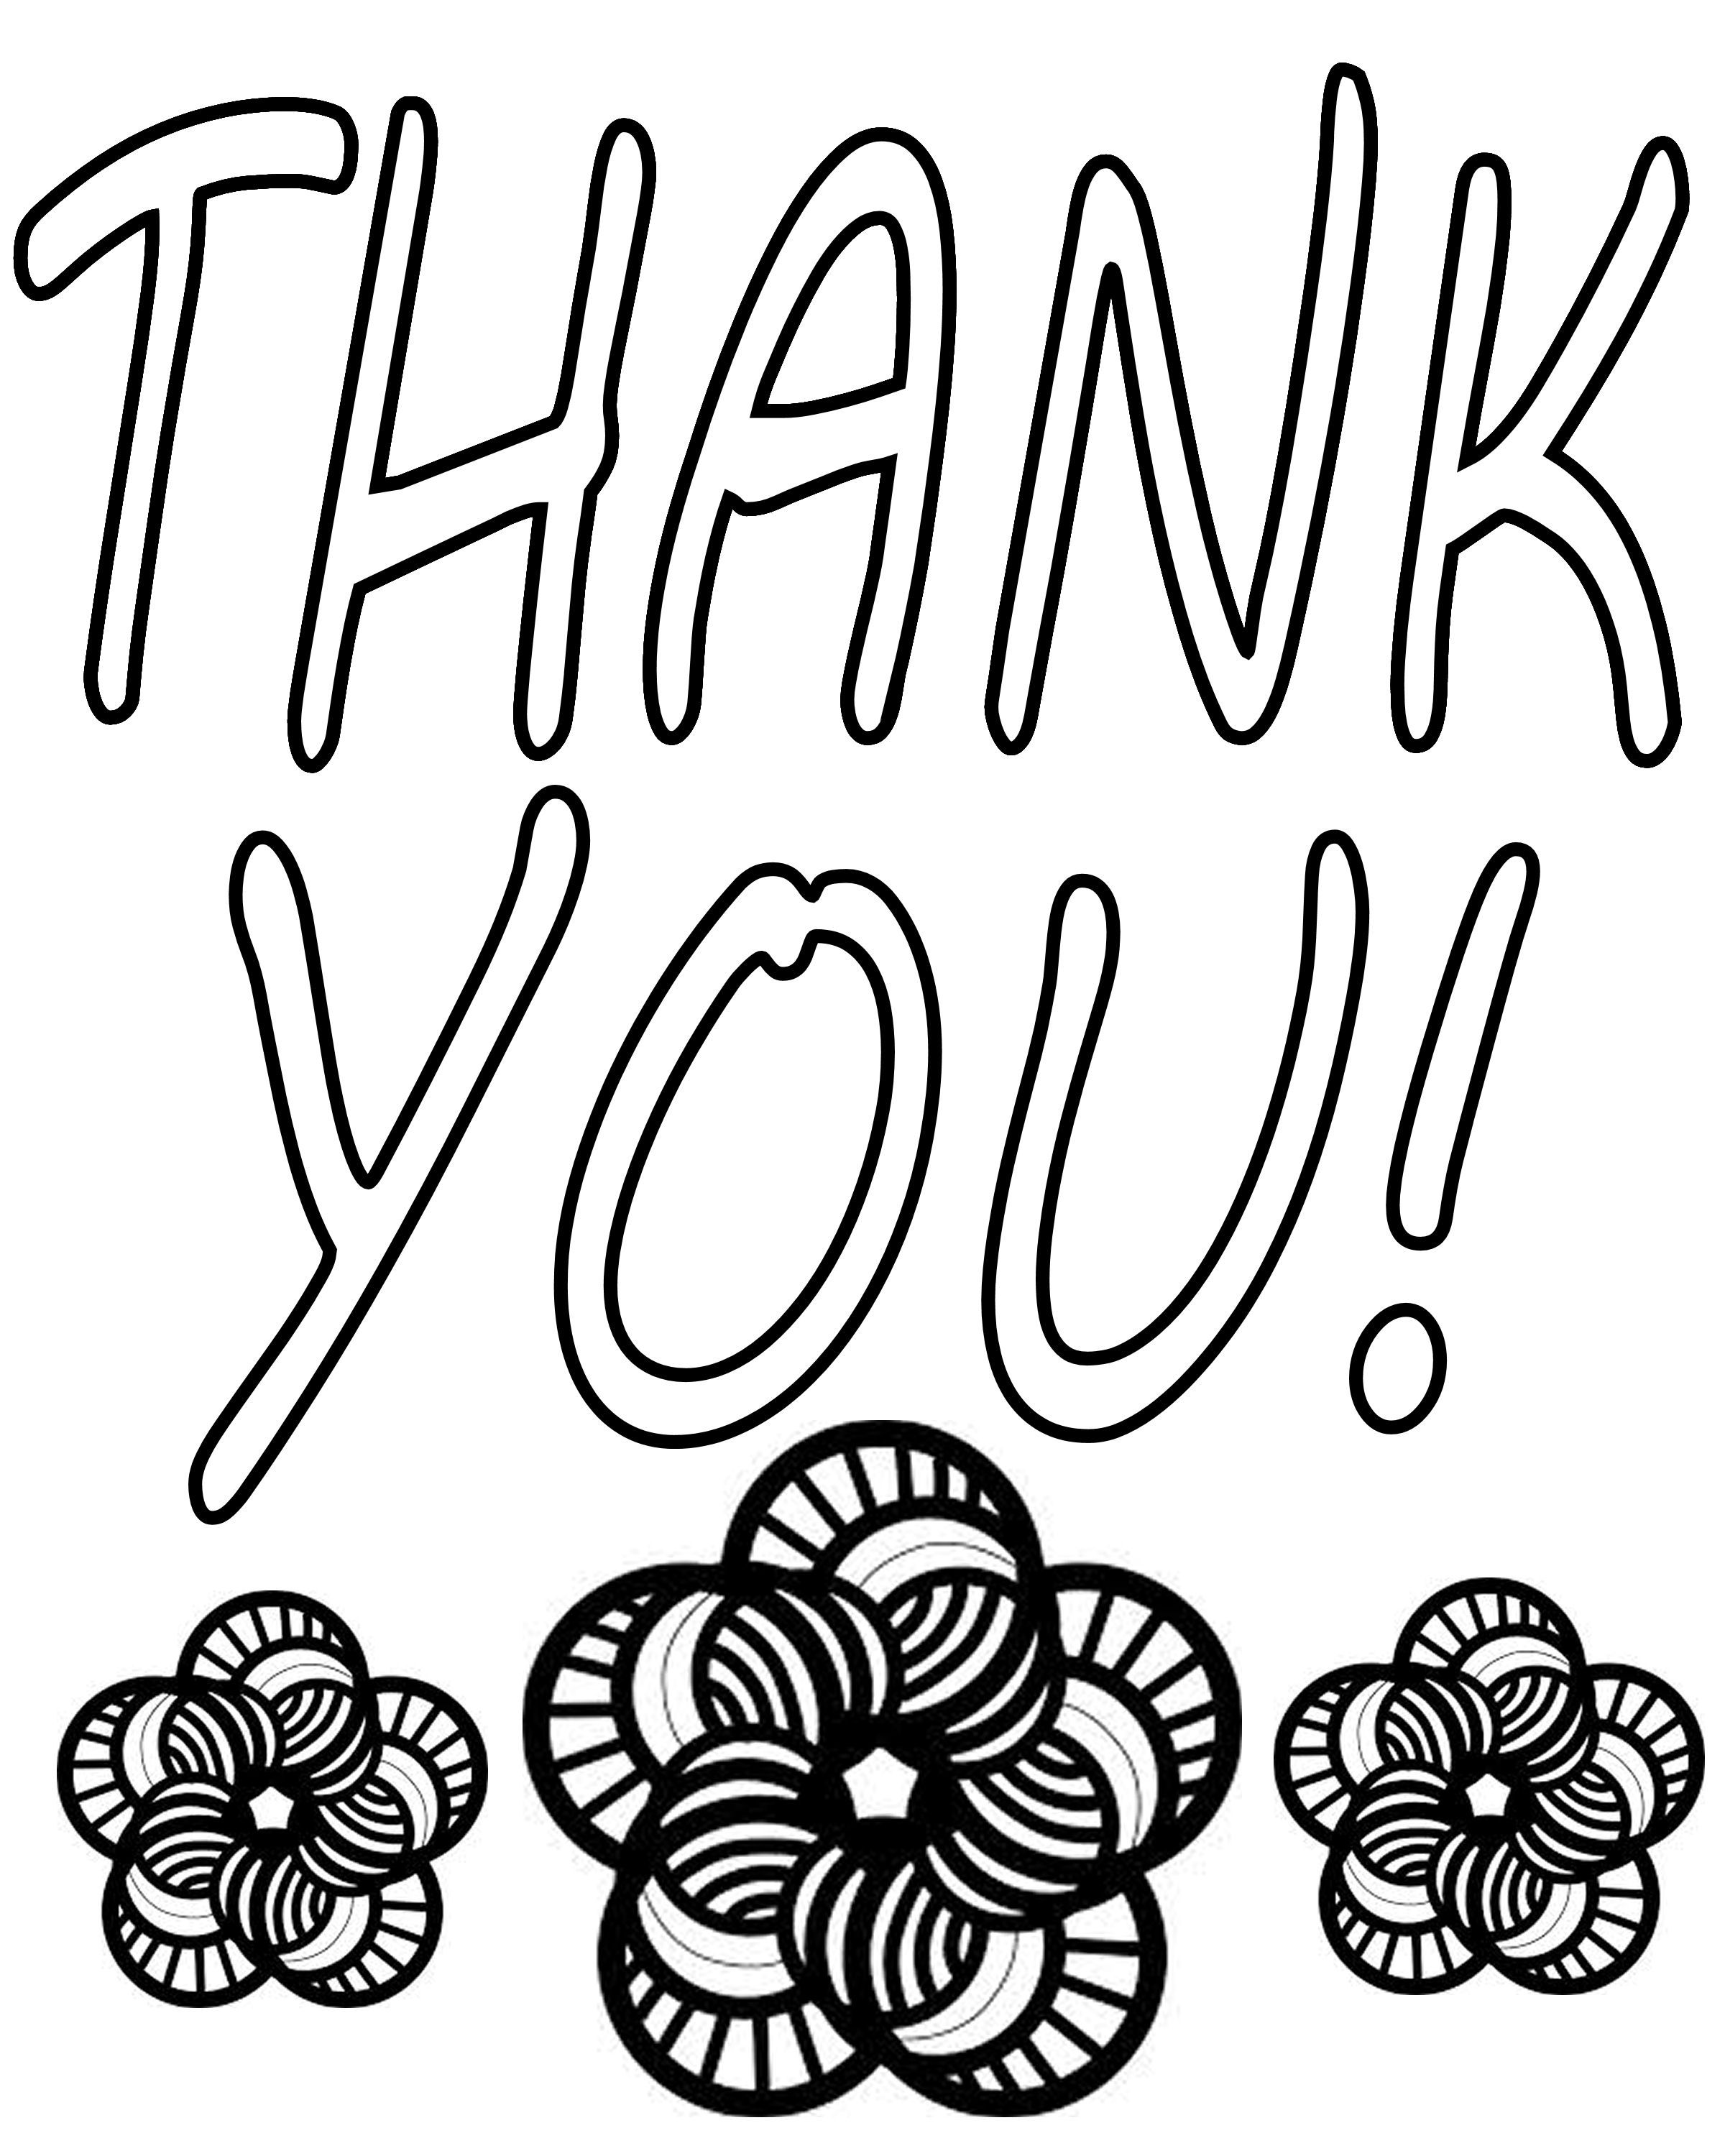 thank you coloring pages 04 | Projects to Try | Pinterest | Free ...